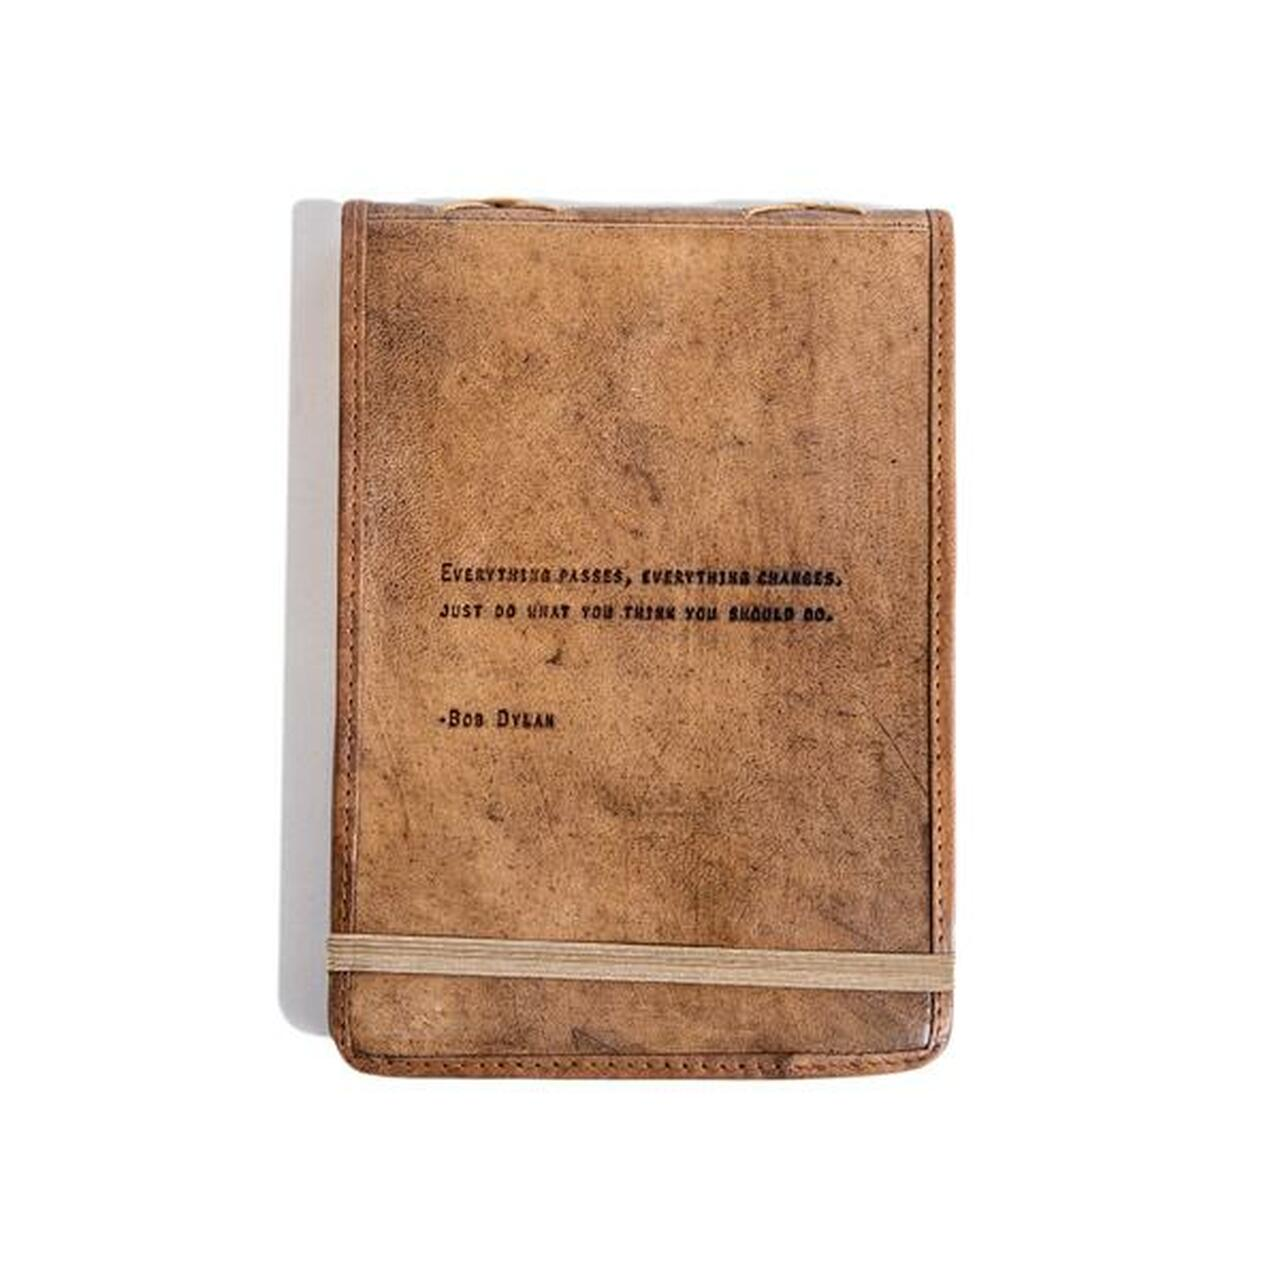 leather journal - everything passes